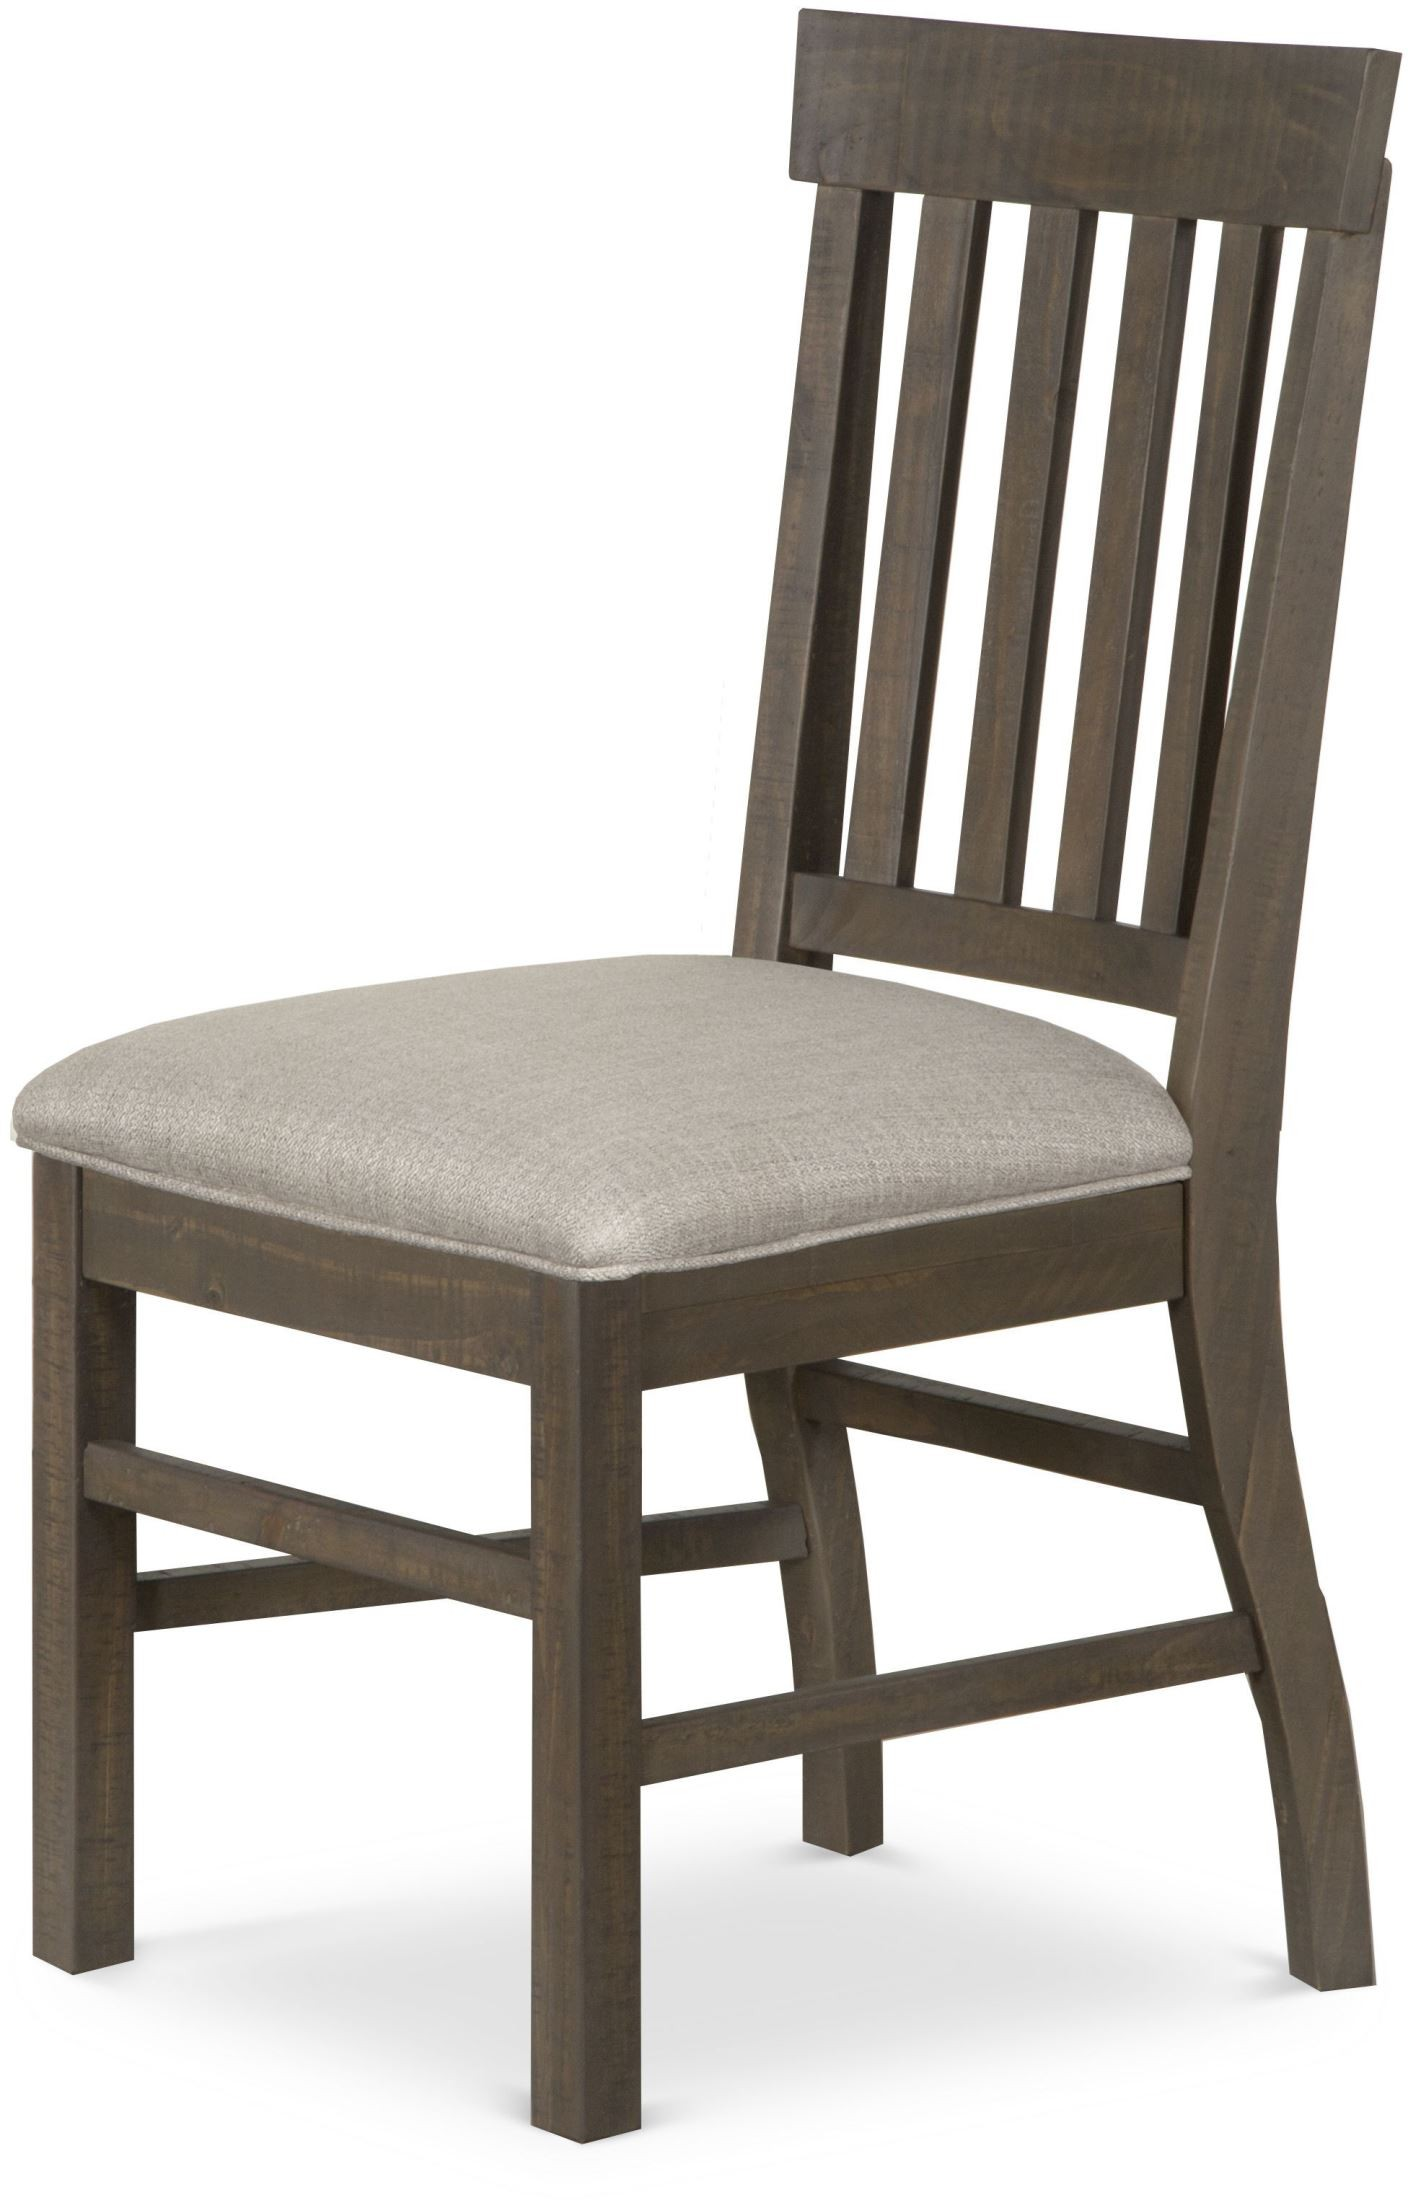 Trinity driftwood dining side chair set of 2 from 2 seat dining set